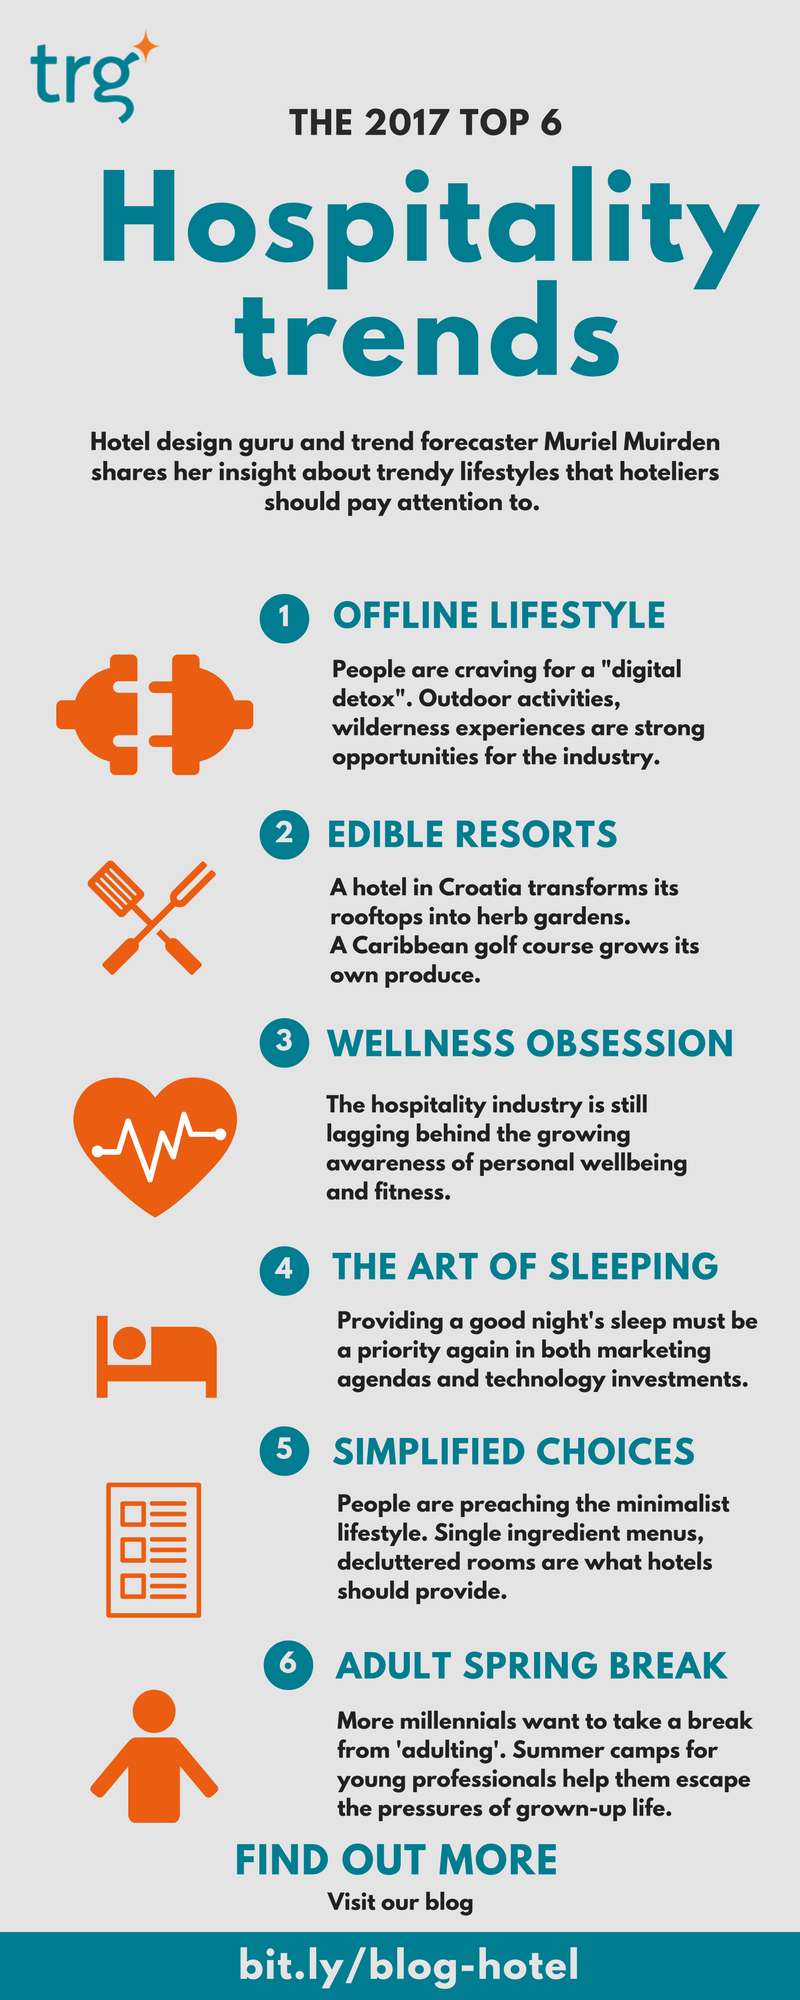 Hospitality trends to look for in 2017